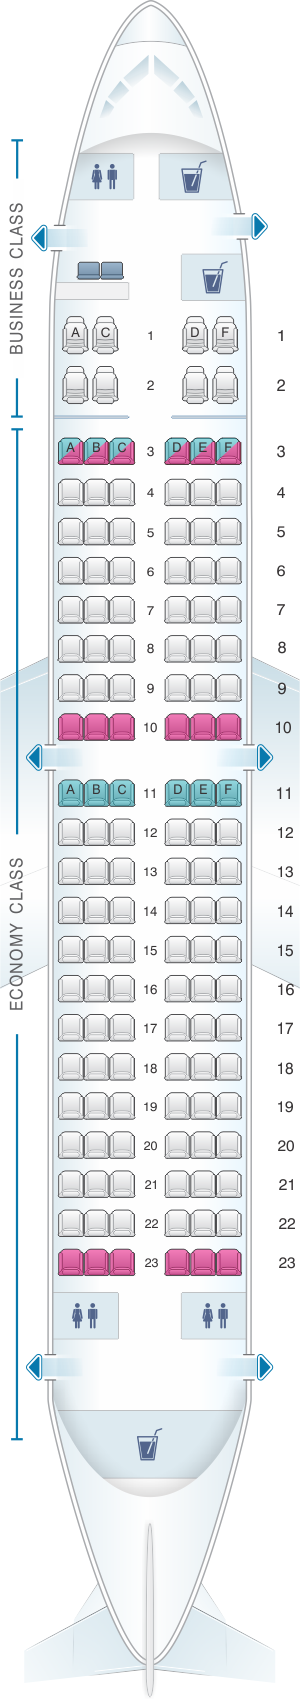 Seat map for TAROM Boeing B737 300 134pax